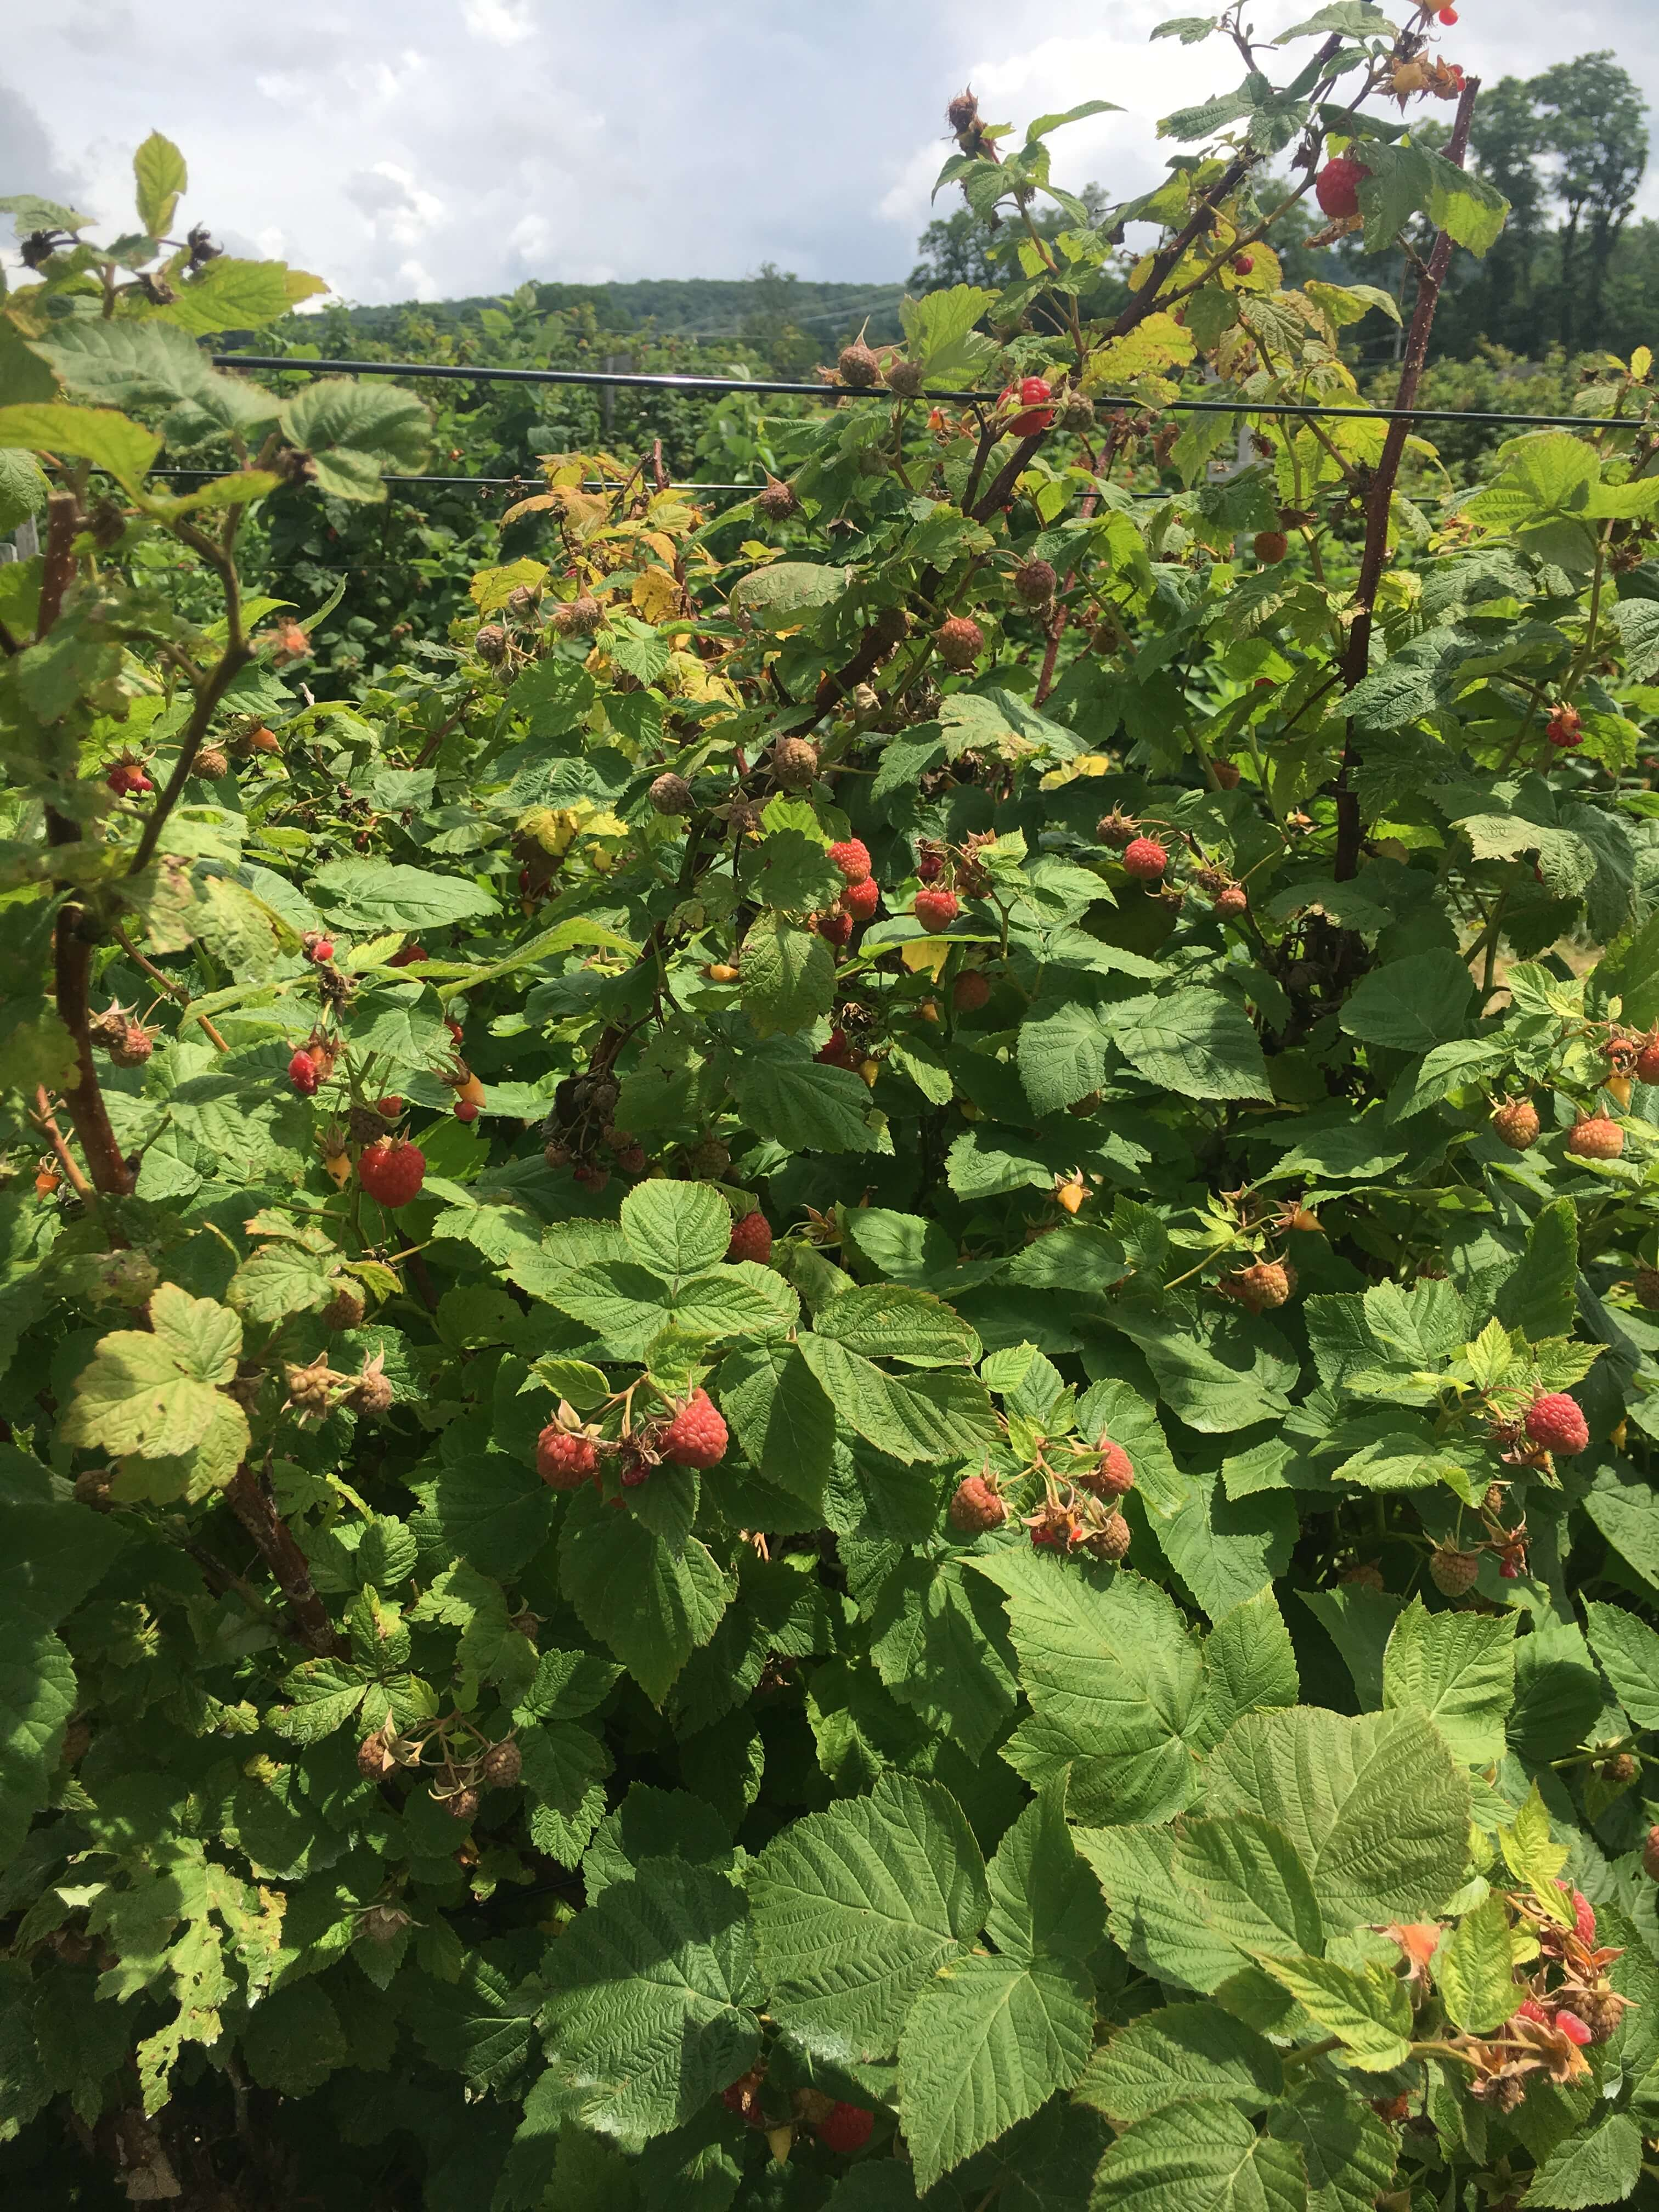 fishkill farms raspberry farm